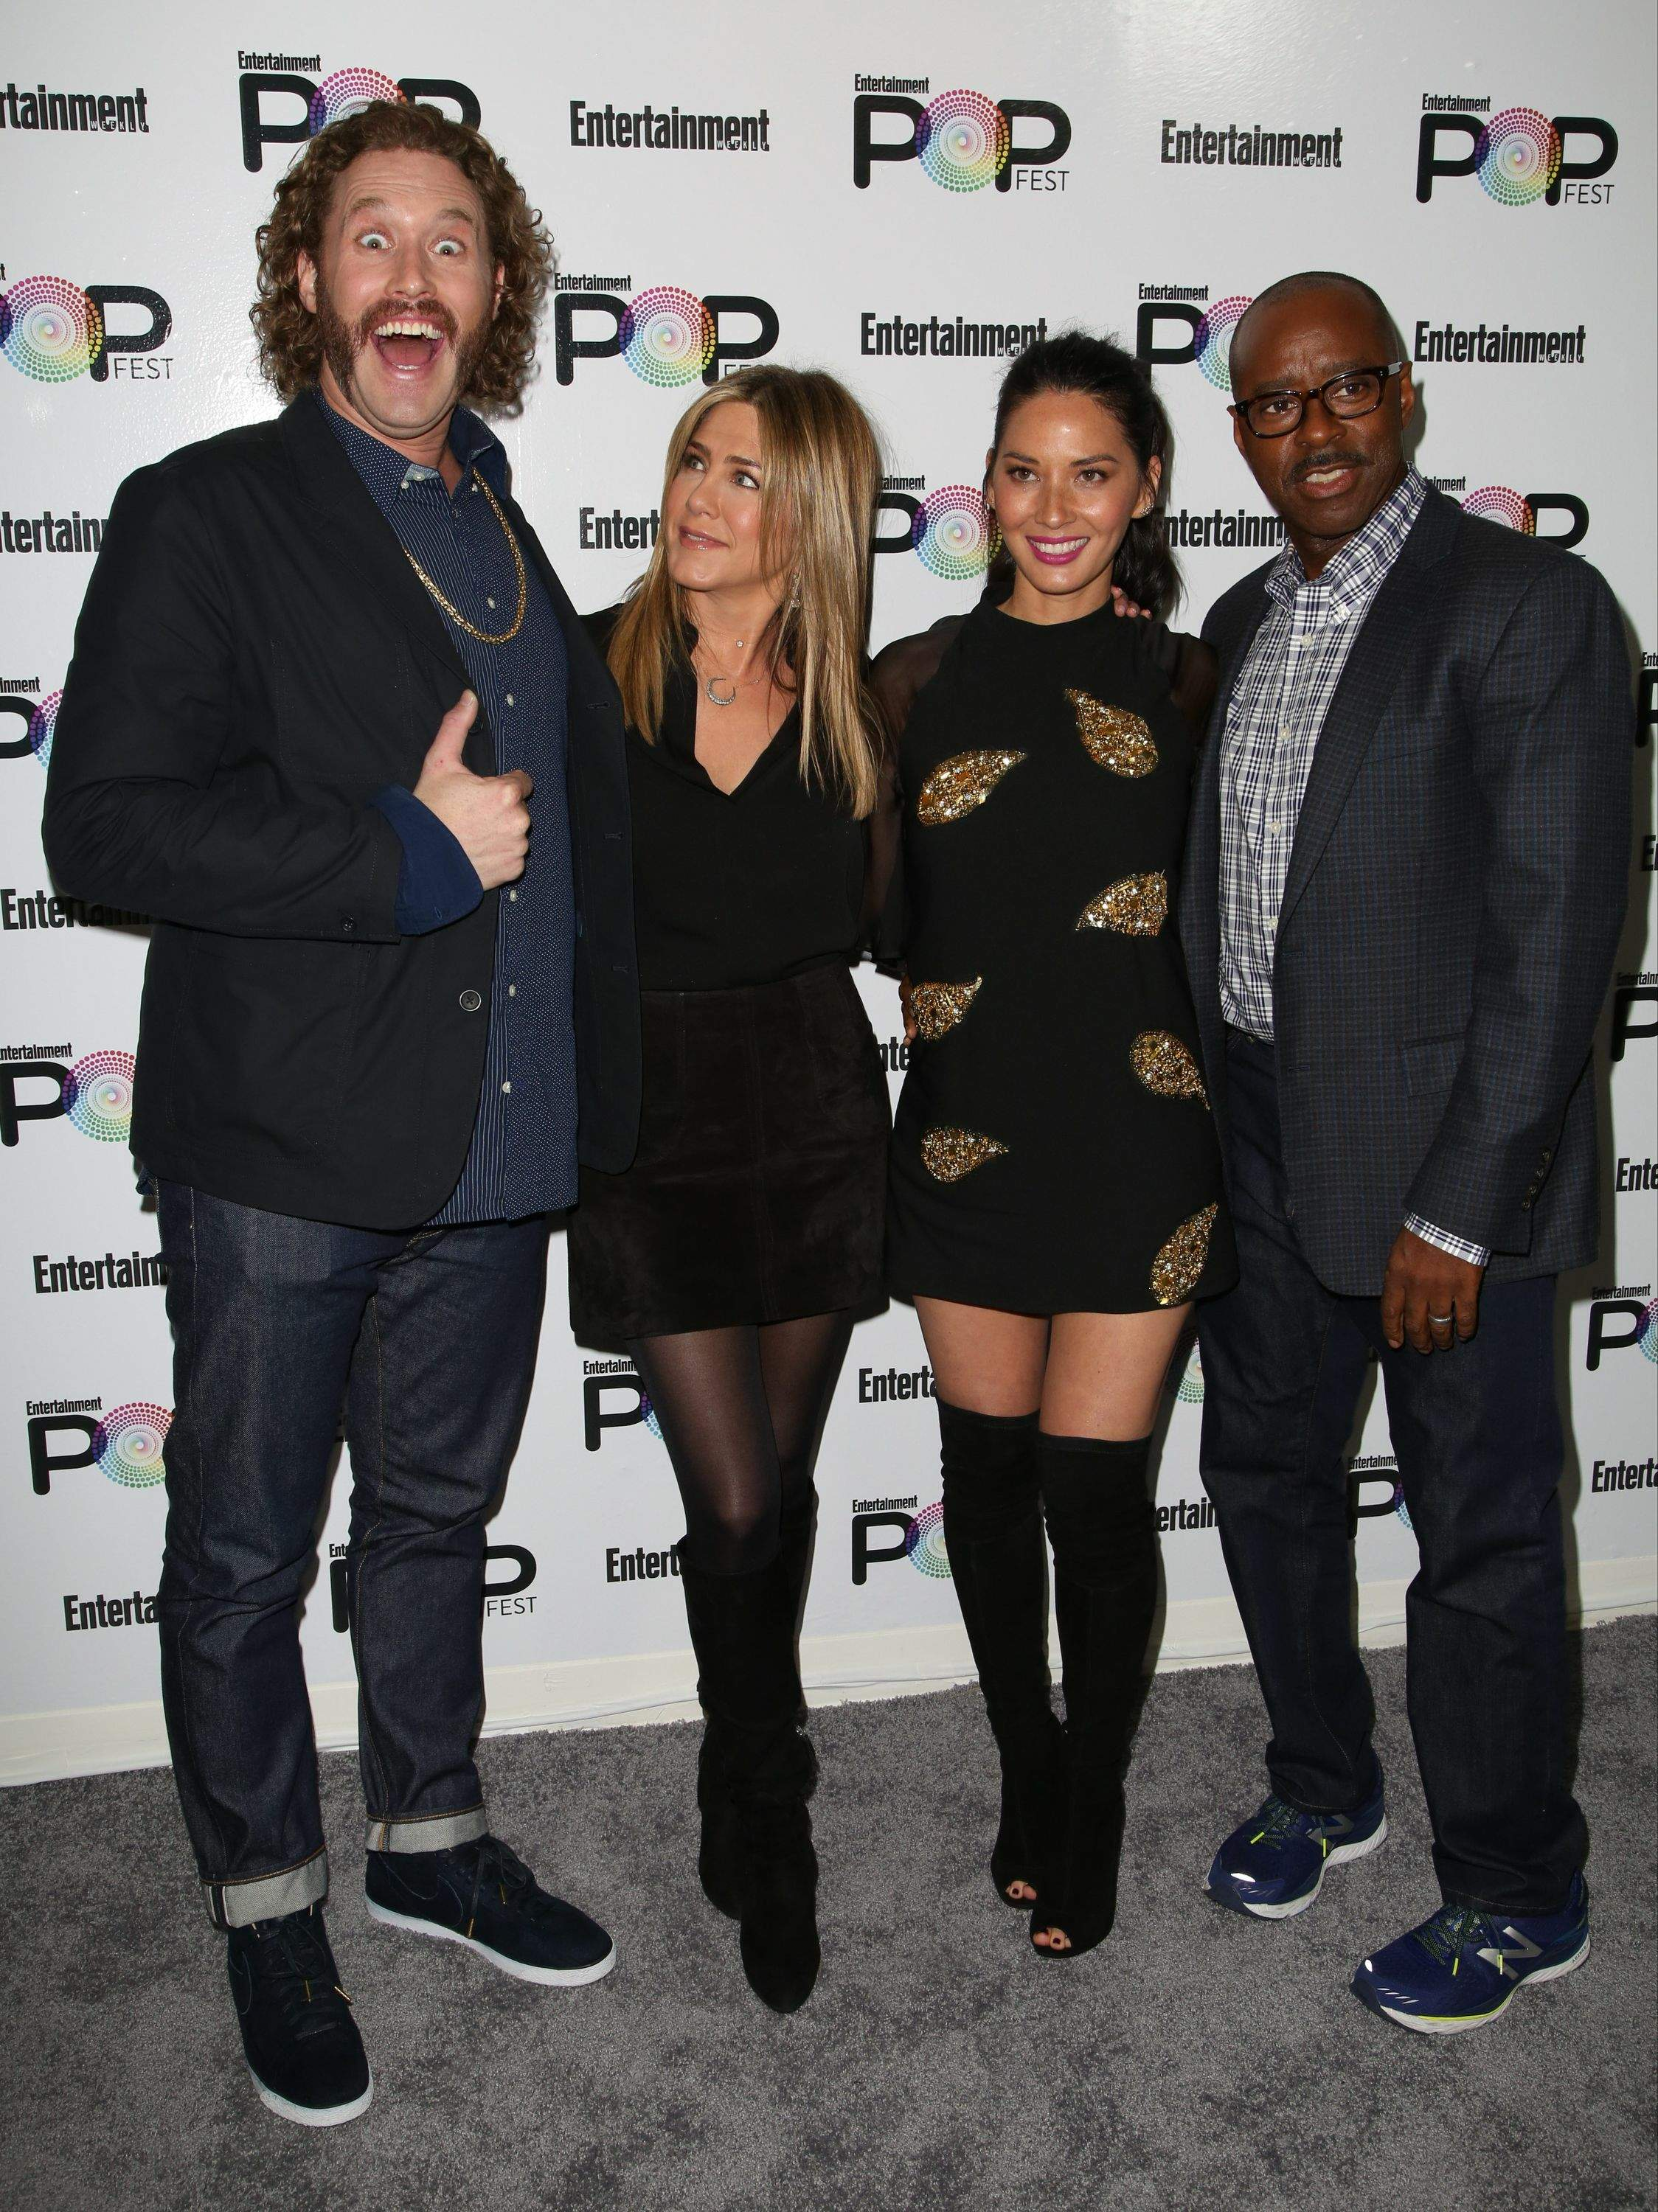 Jennifer Aniston – Entertainment Weekly PopFest in Los Angeles   Jennifer-Aniston:-Entertainment-Weekly-PopFest--16